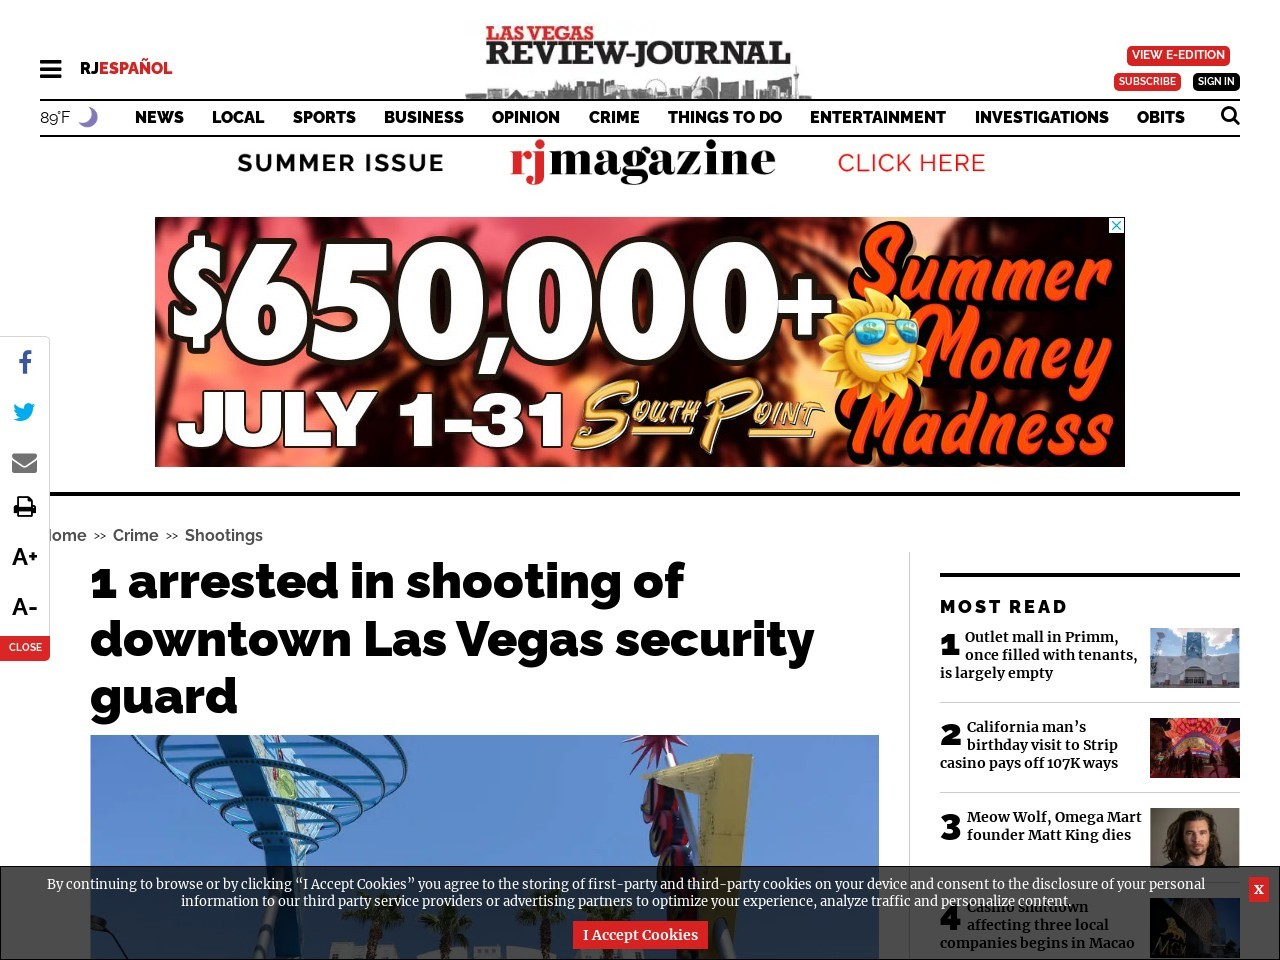 1 arrested in shooting of downtown Las Vegas security guard